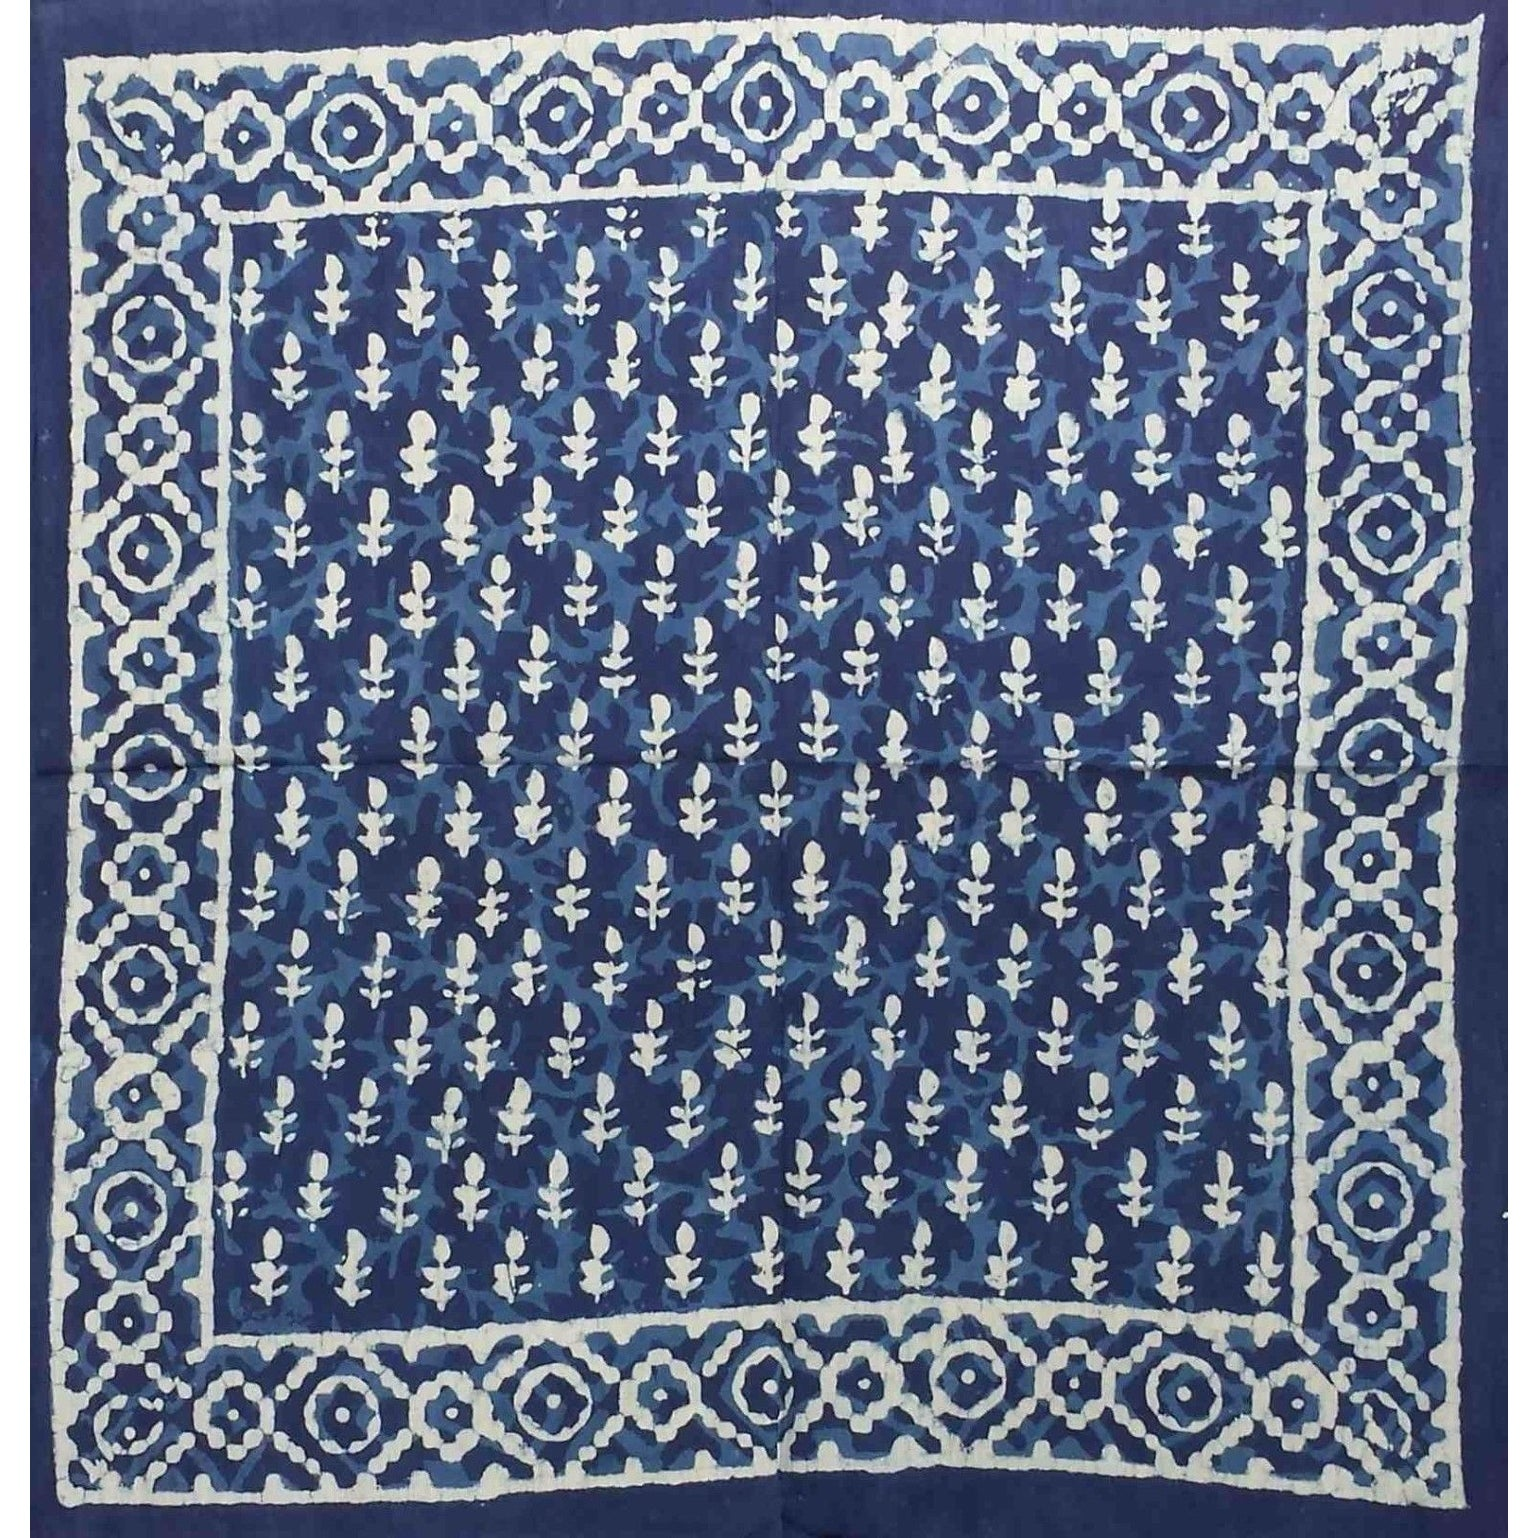 23ae72655 Buy Scarves Online at Overstock | Our Best Scarves & Wraps Deals